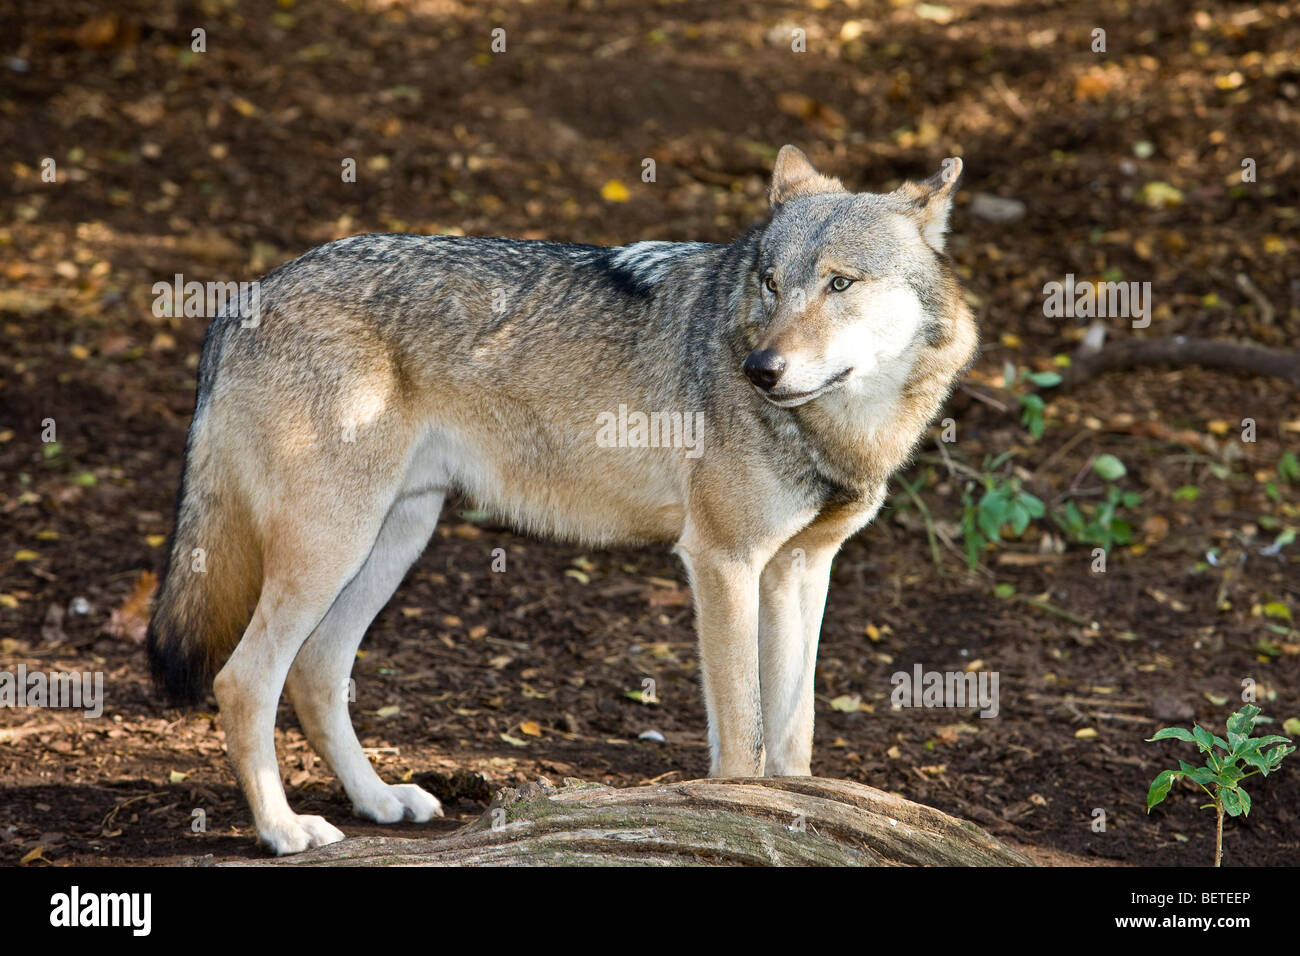 Grey Wolf on alert in the forrest - Stock Image